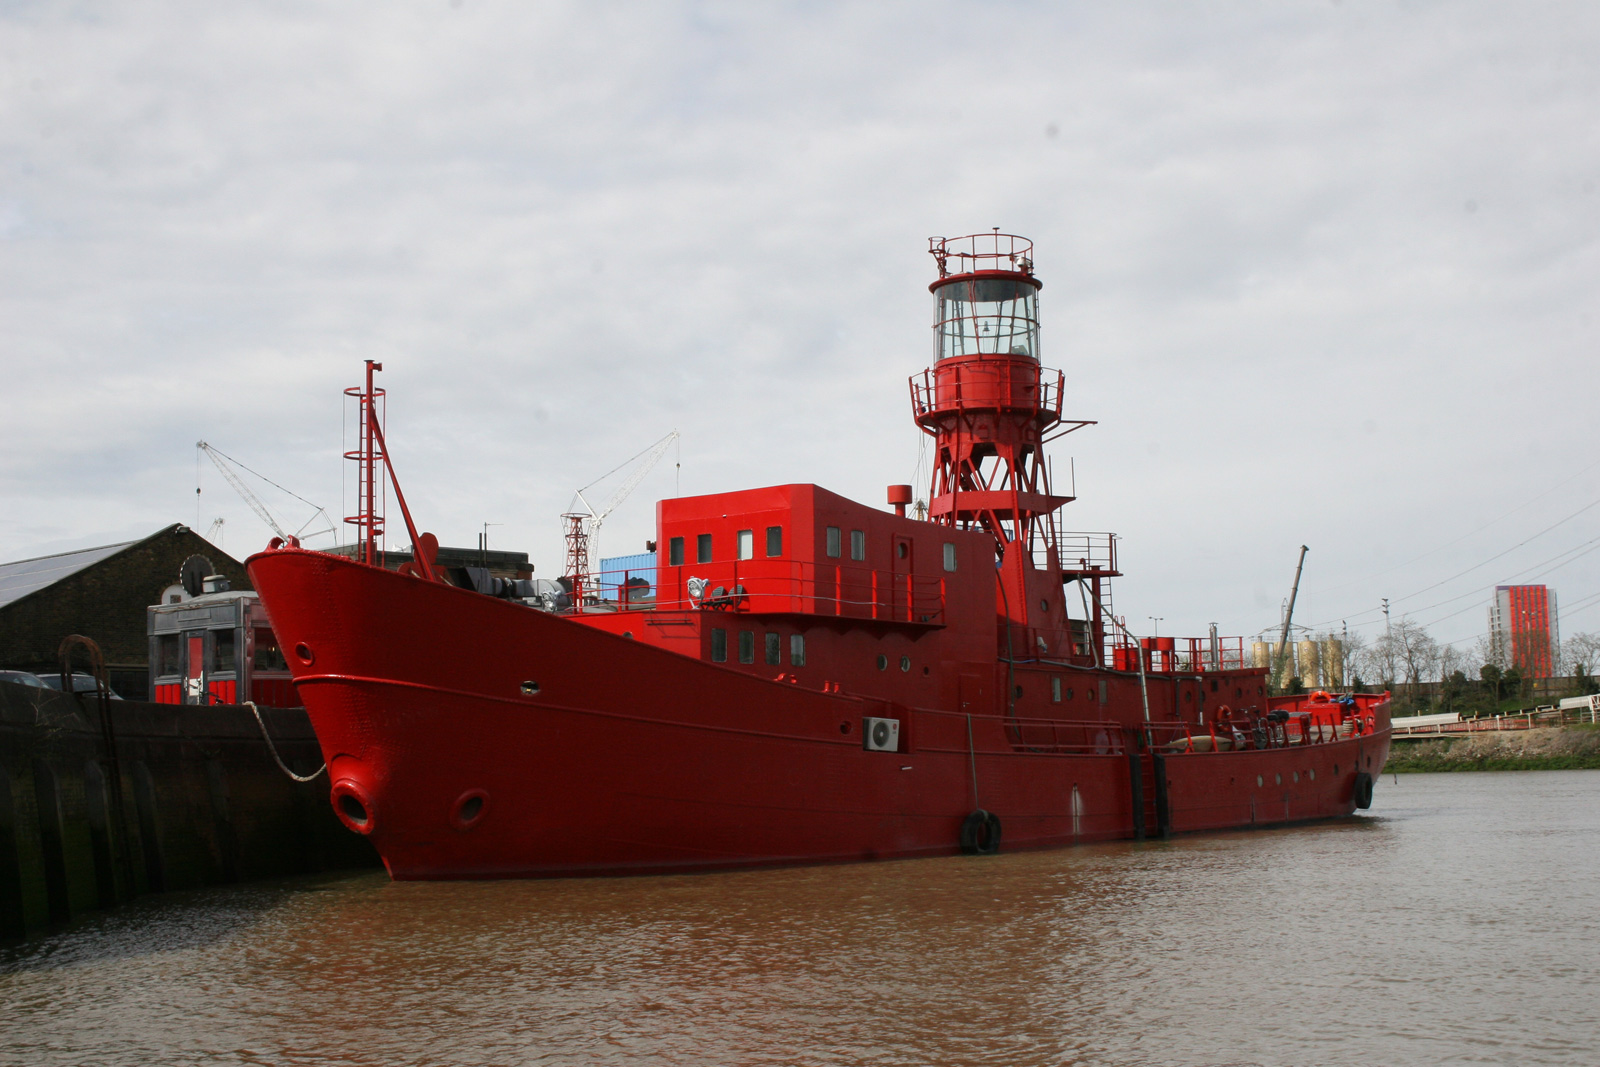 Exterior Lightship95. Courtesy of the studio